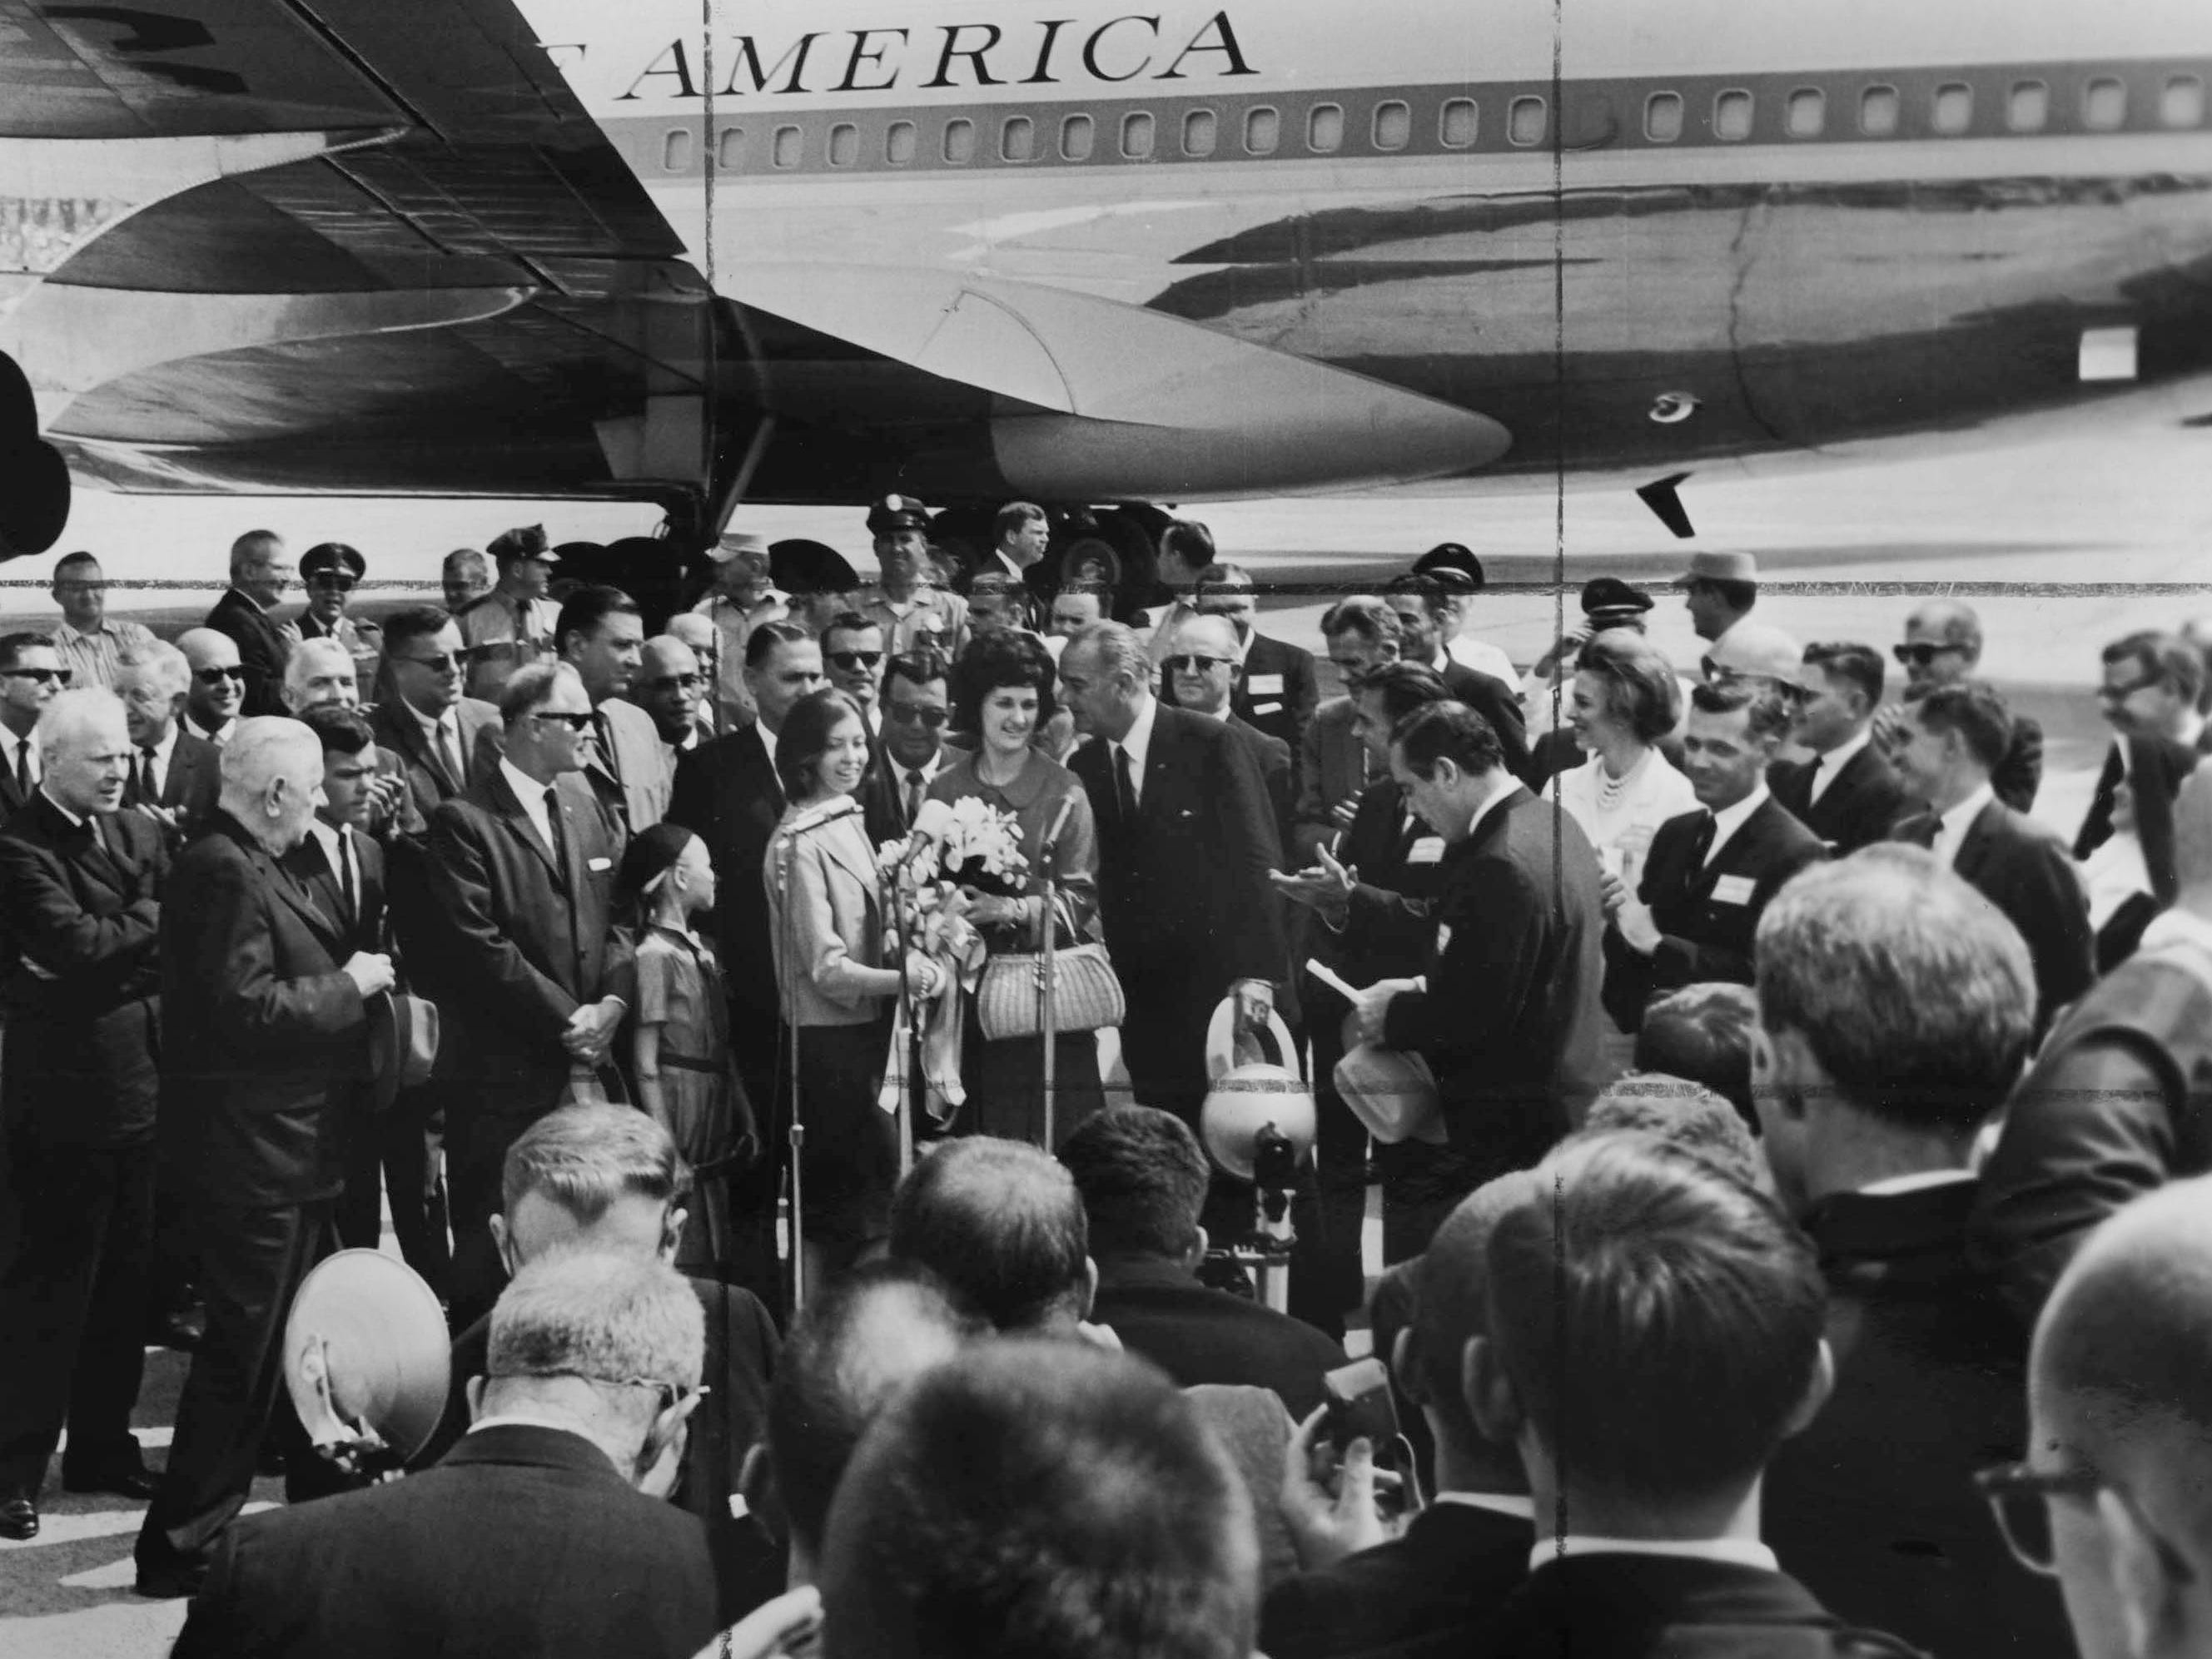 In a May 7, 1964 photograph, President Lyndon B. Johnson and his daughter, Lynda Bird, are welcomed at Municipal Airport.